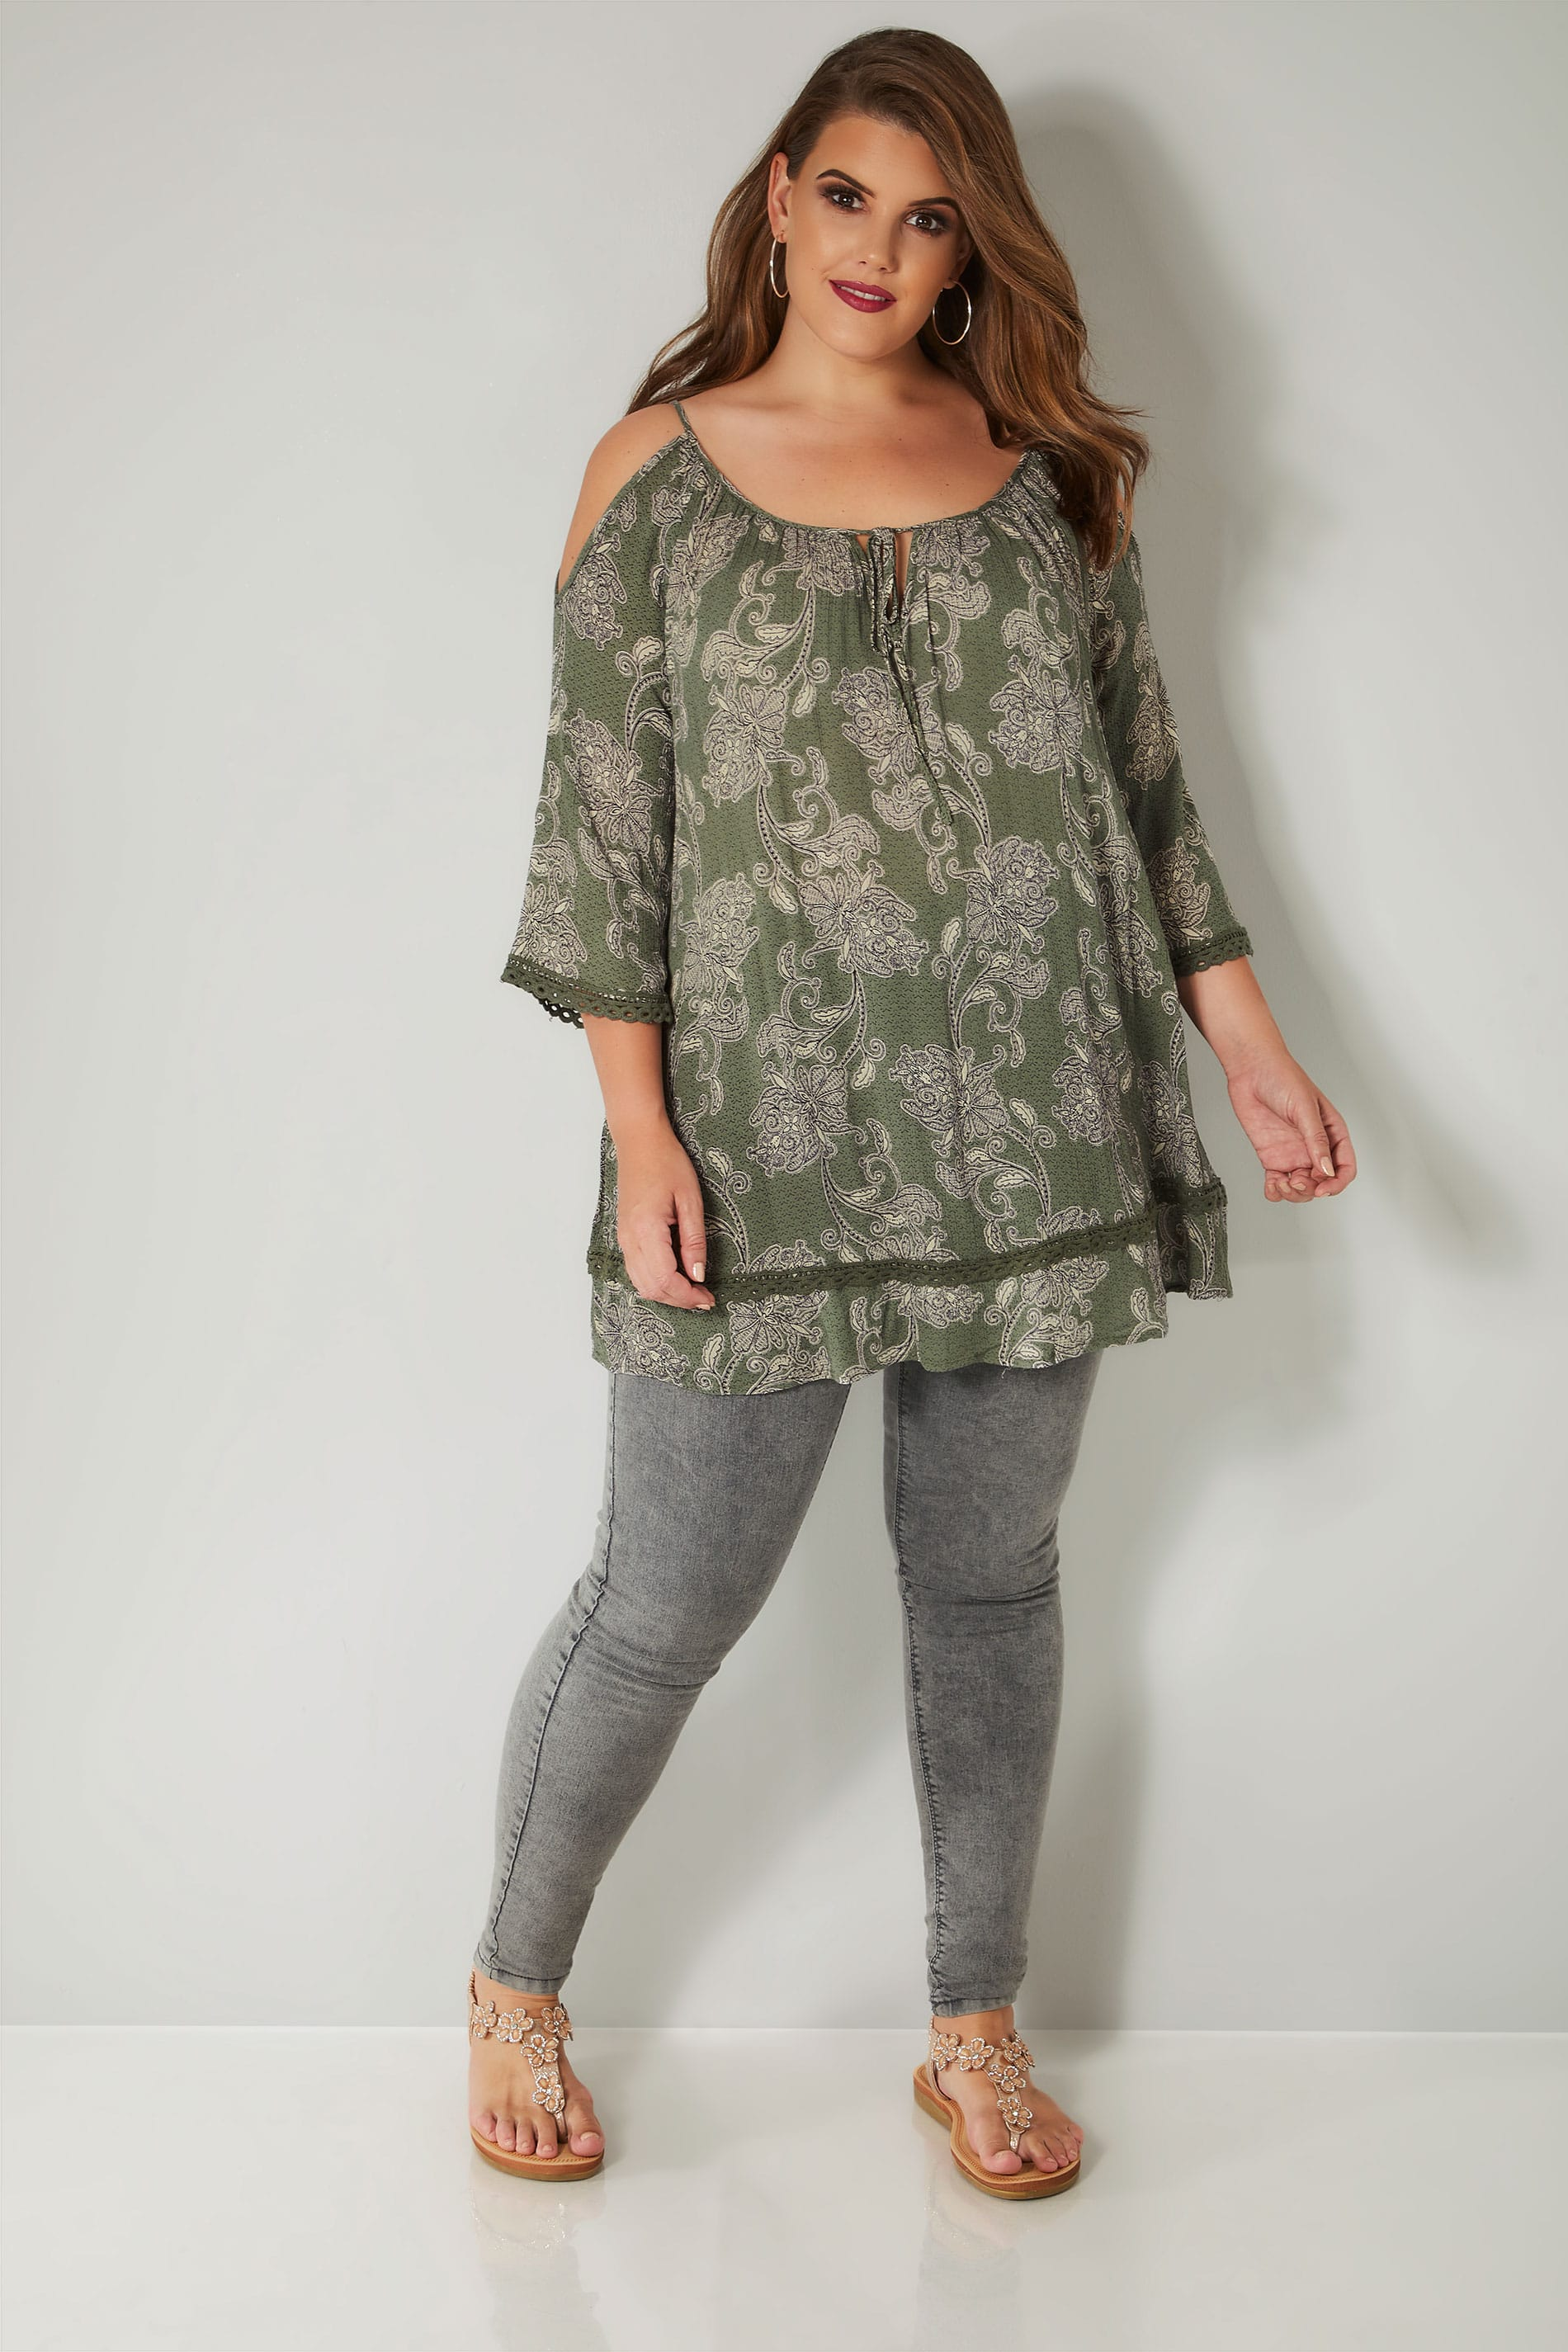 5b64fcb3ceb929 Khaki Paisley Print Top With Cold Shoulder Cut Outs